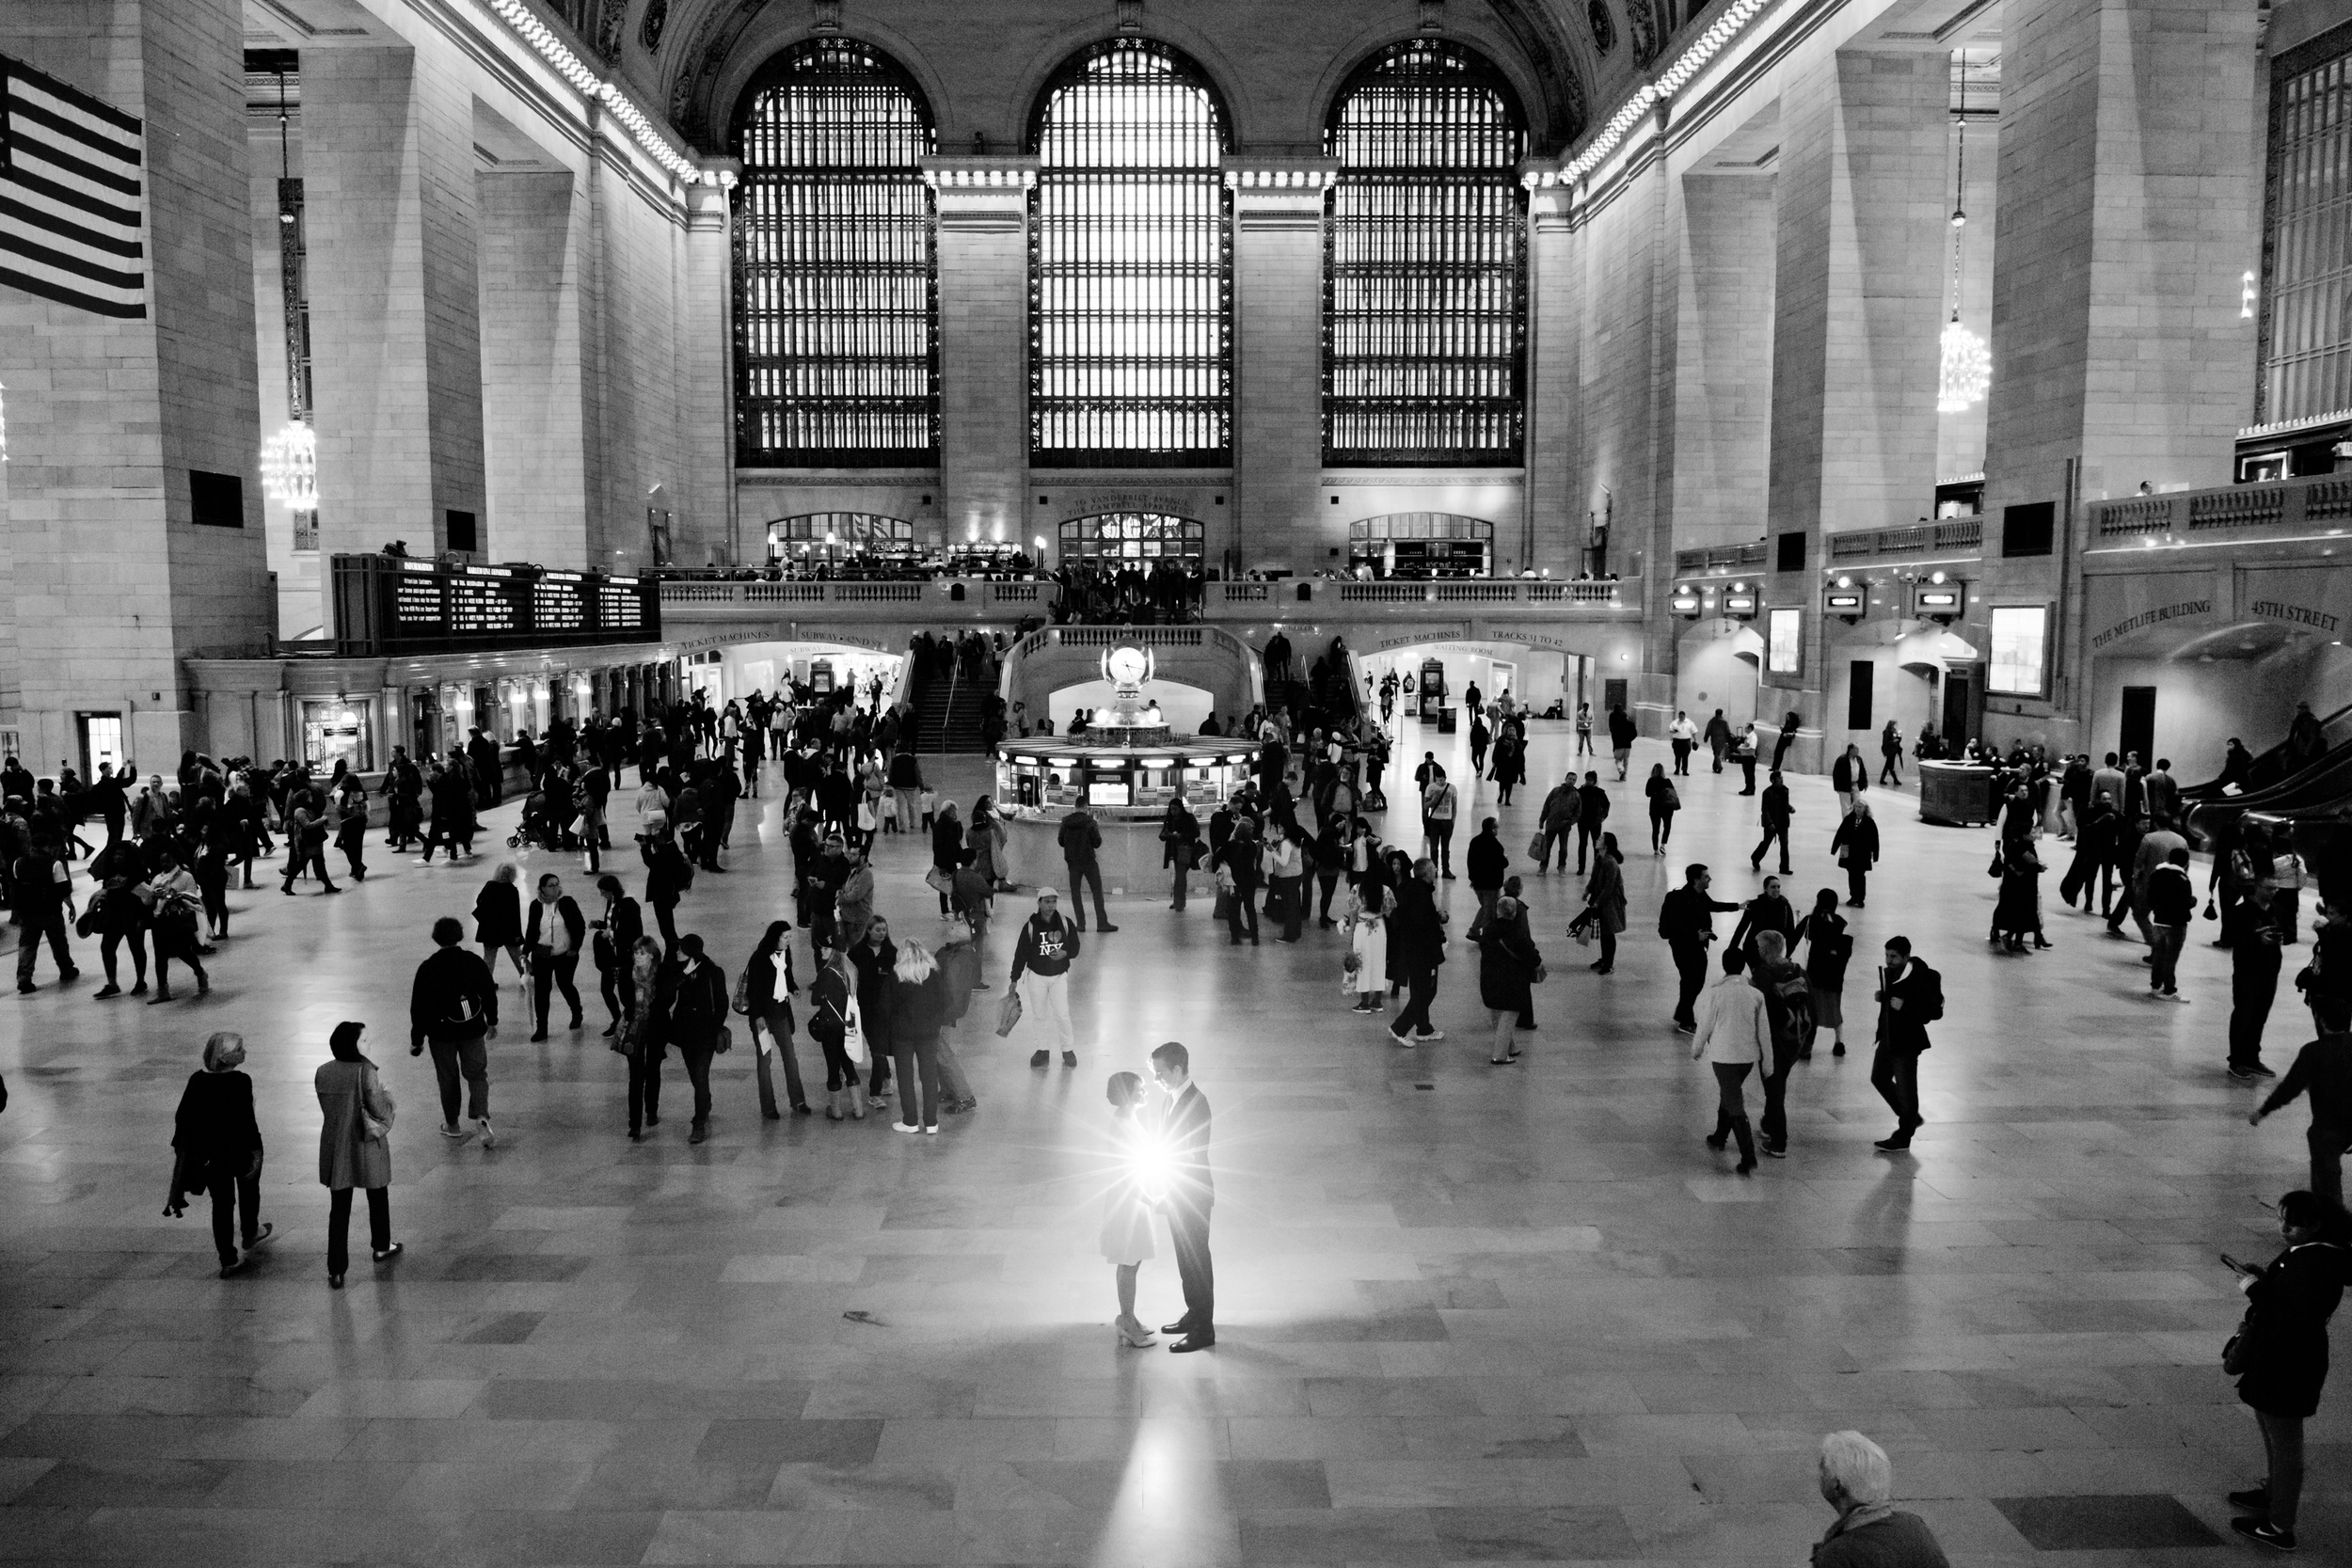 126_CarlyGaebe_SteadfastStudio_WeddingPhotography_NewYorkCity_Manhattan_GrandCentralStation_Bride_Groom_BlackandWhite.jpg